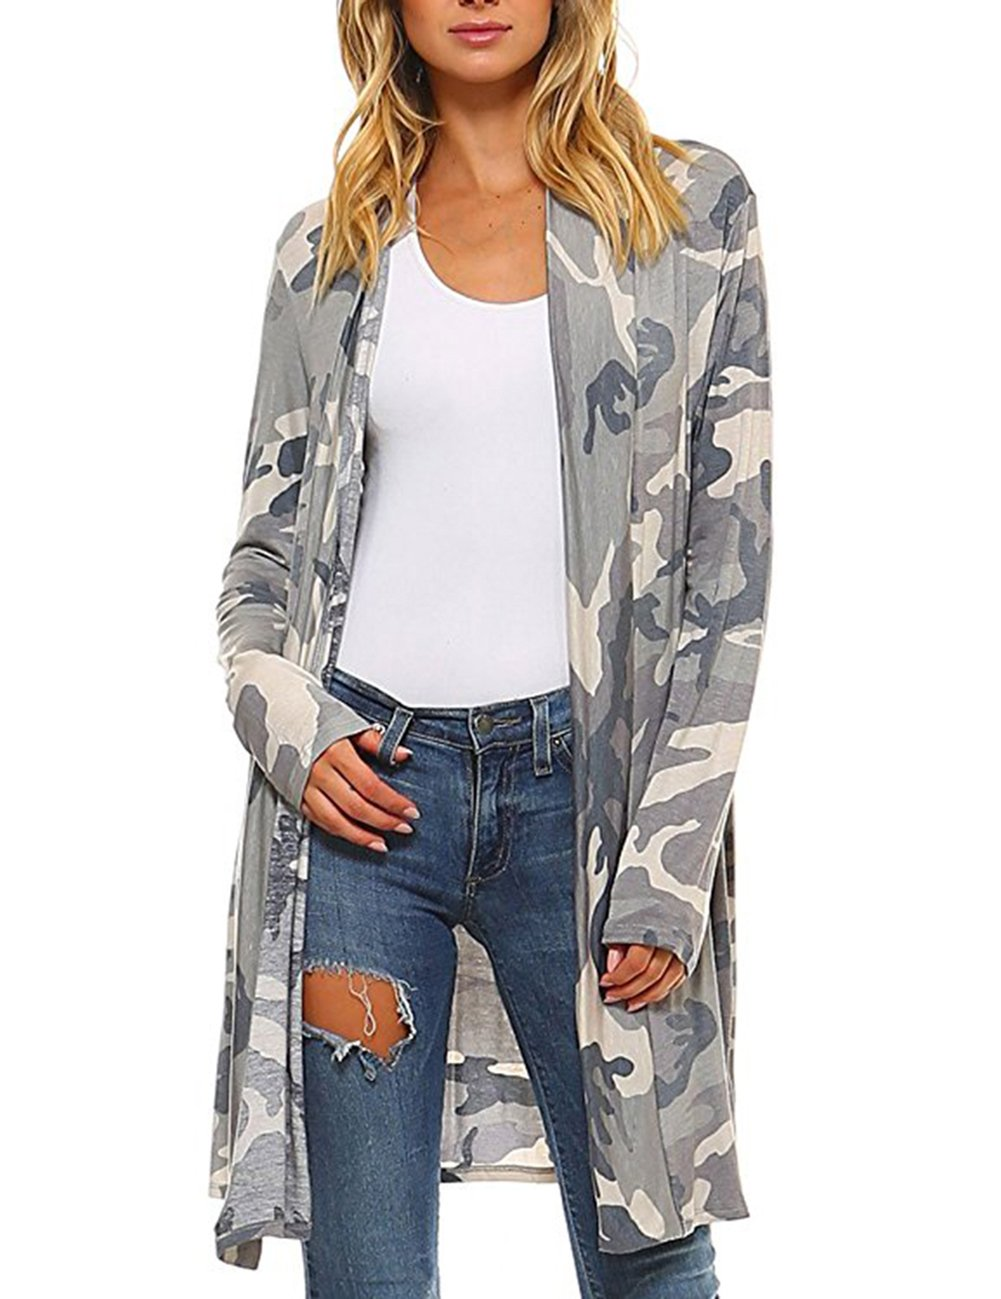 XARAZA Women Floral Long Sleeve Cardigan, Open Front Coverup Outwear Tops